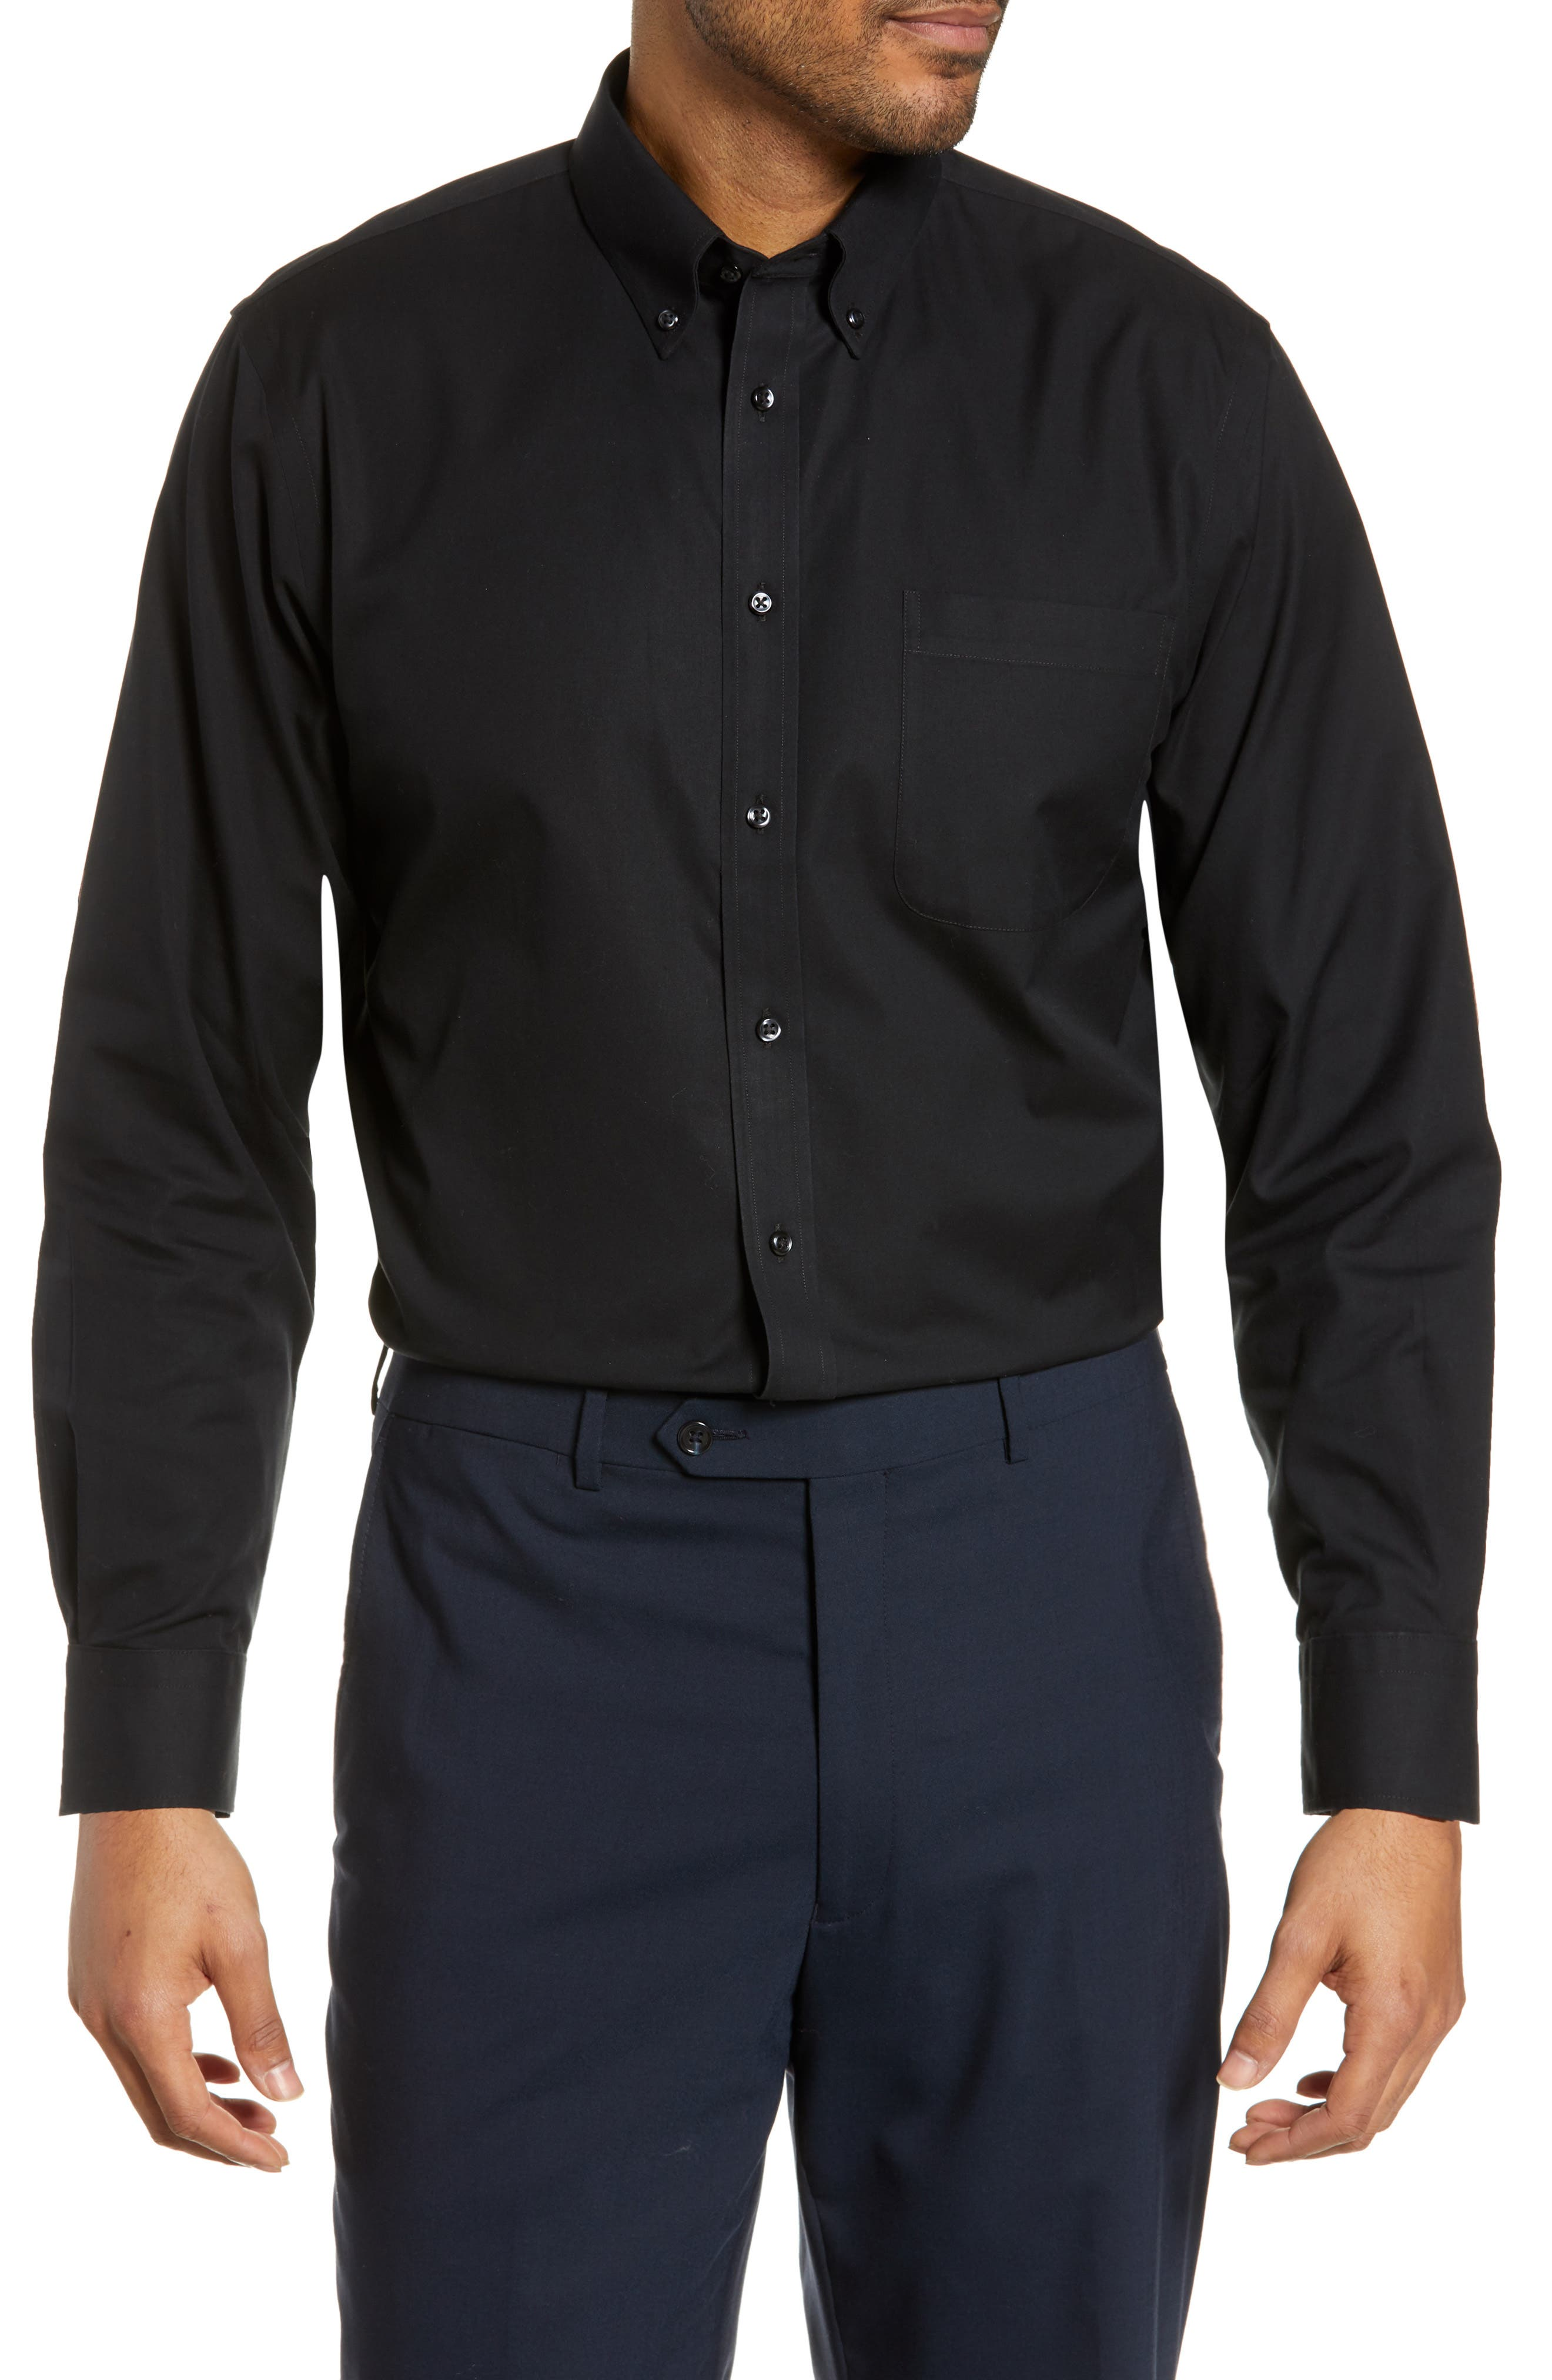 NORDSTROM MEN'S SHOP Smartcare<sup>™</sup> Traditional Fit Pinpoint Dress Shirt, Main, color, BLACK ROCK